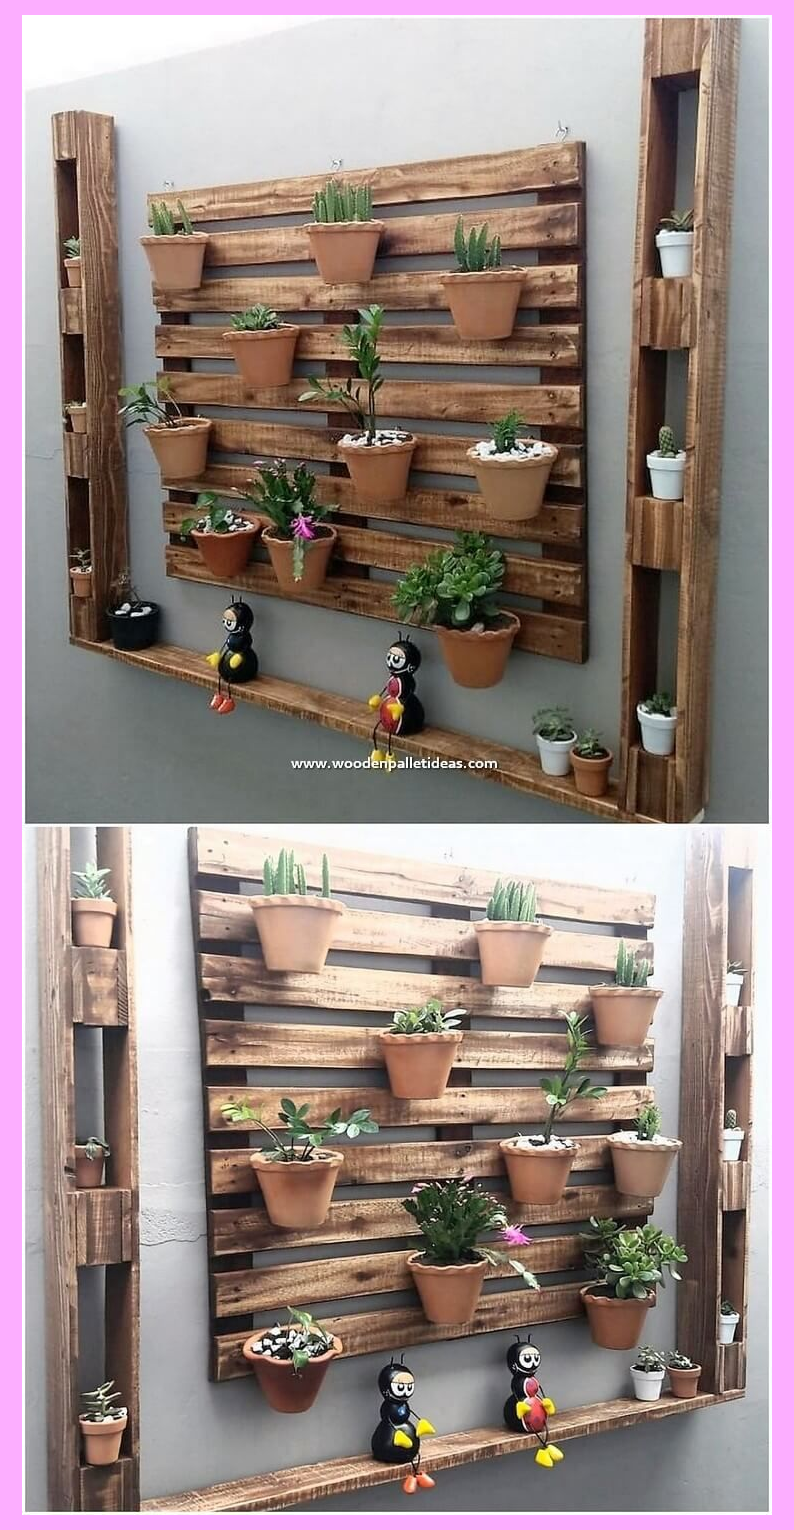 Wondrous DIY Pallet Ideas for Your Weekend Home Project#diy #home #ideas #pallet #project #weekend #wondrous